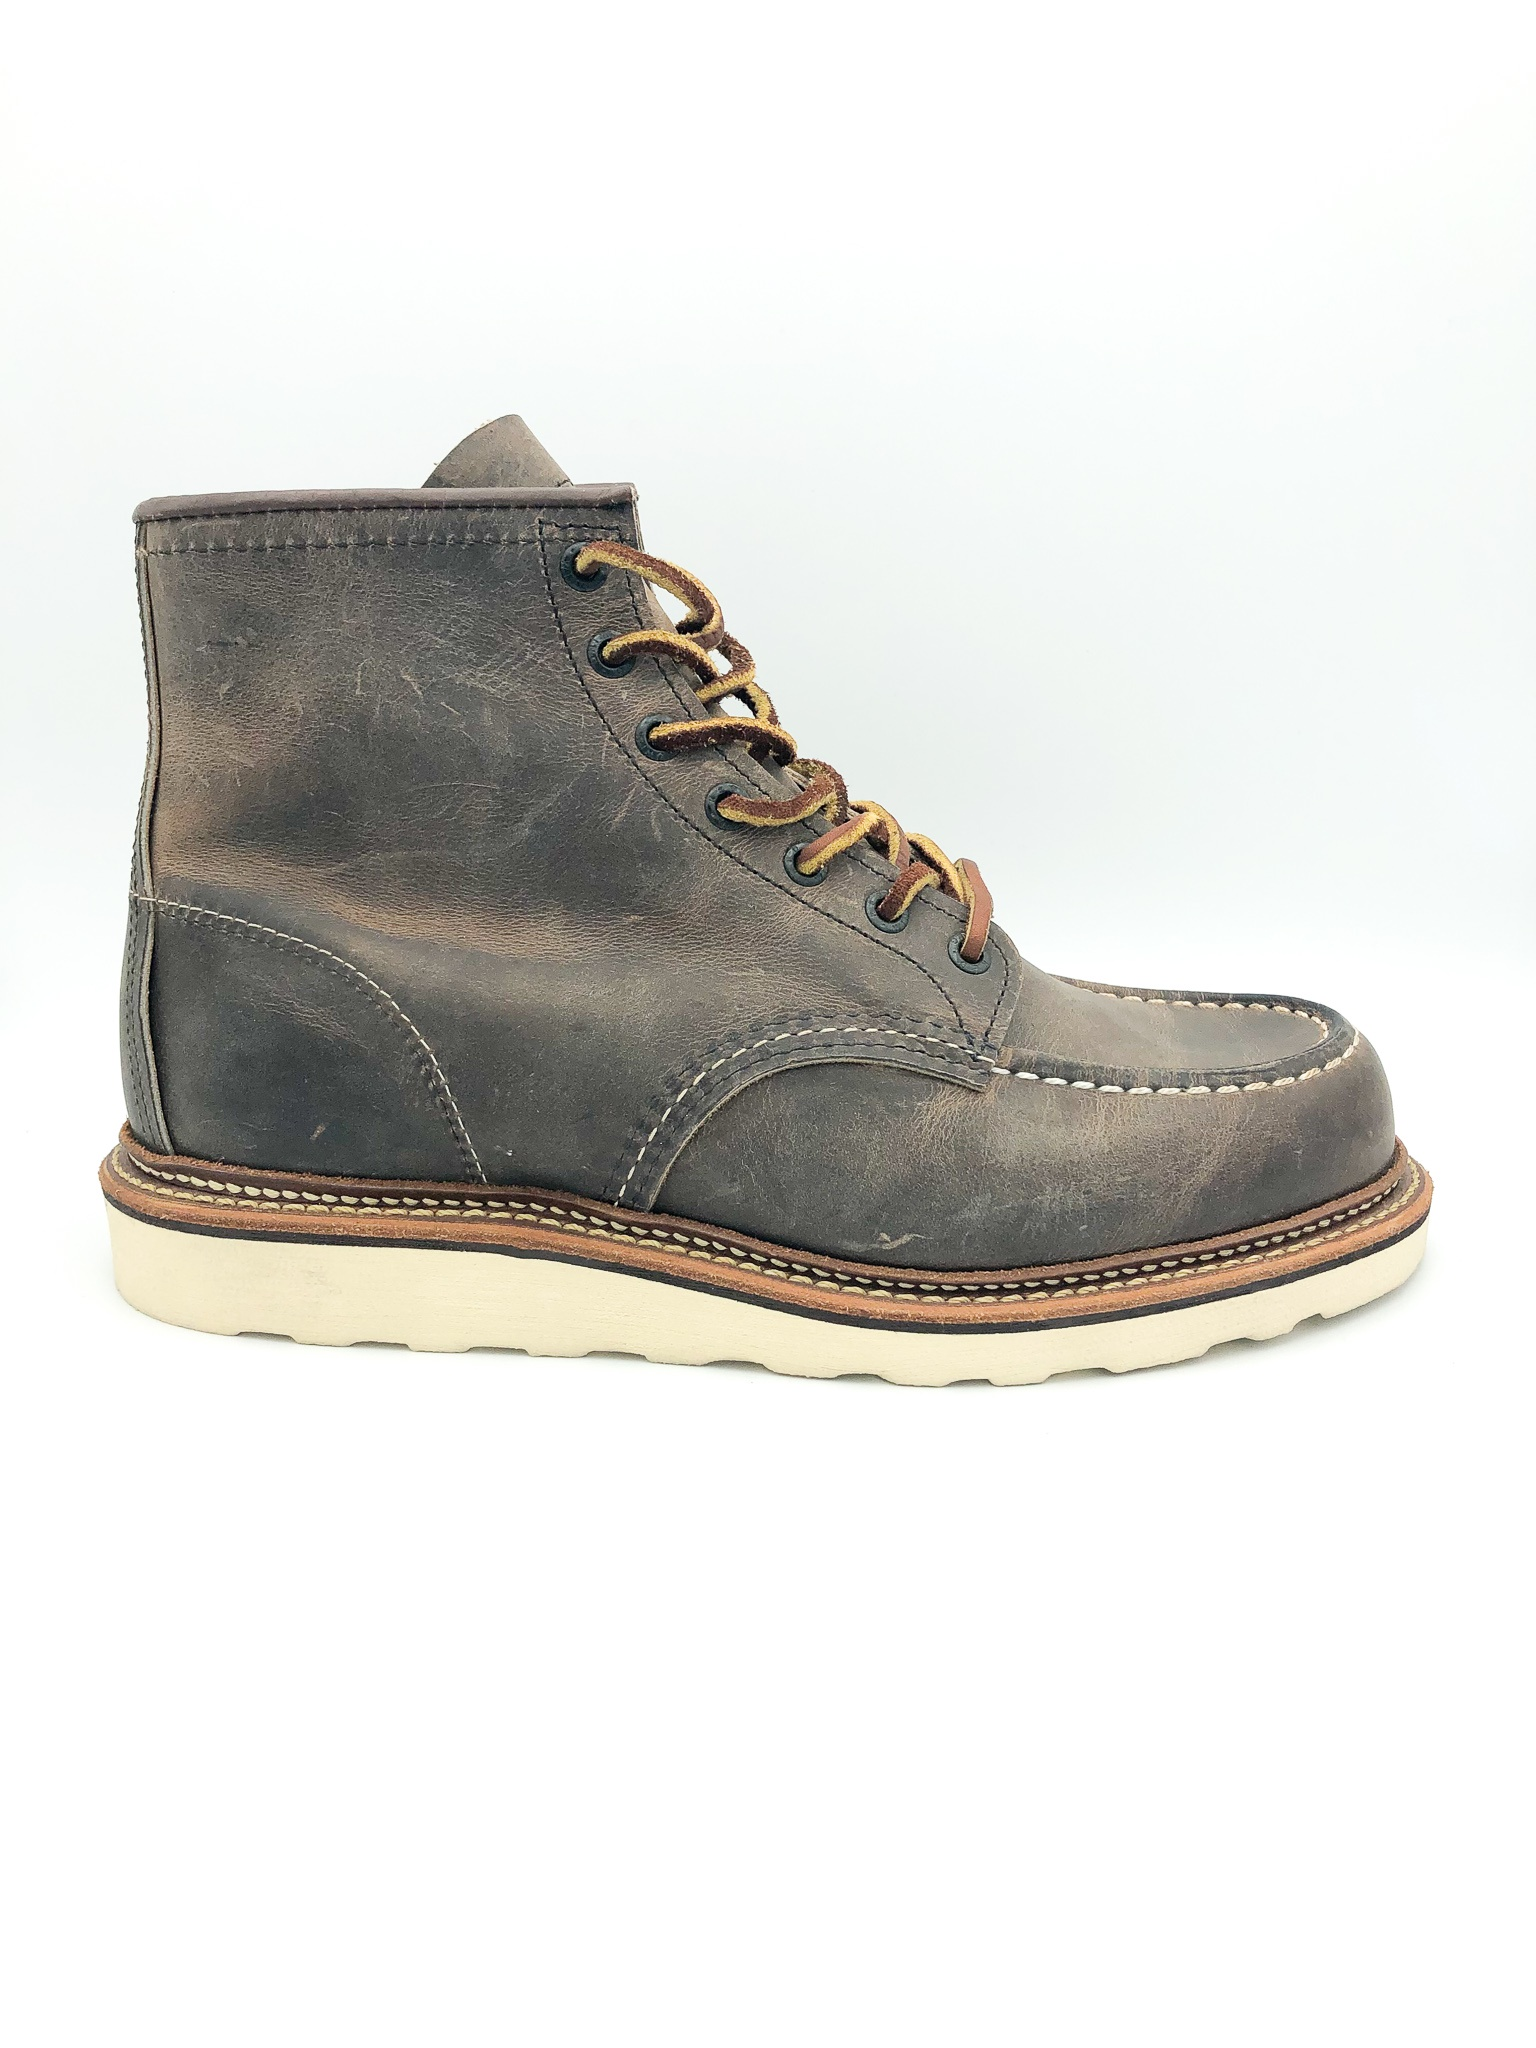 57bf84ac7d6 RED WING - MEN'S CLASSIC MOC IN CONCRETE ROUGH AND TOUGH LEATHER